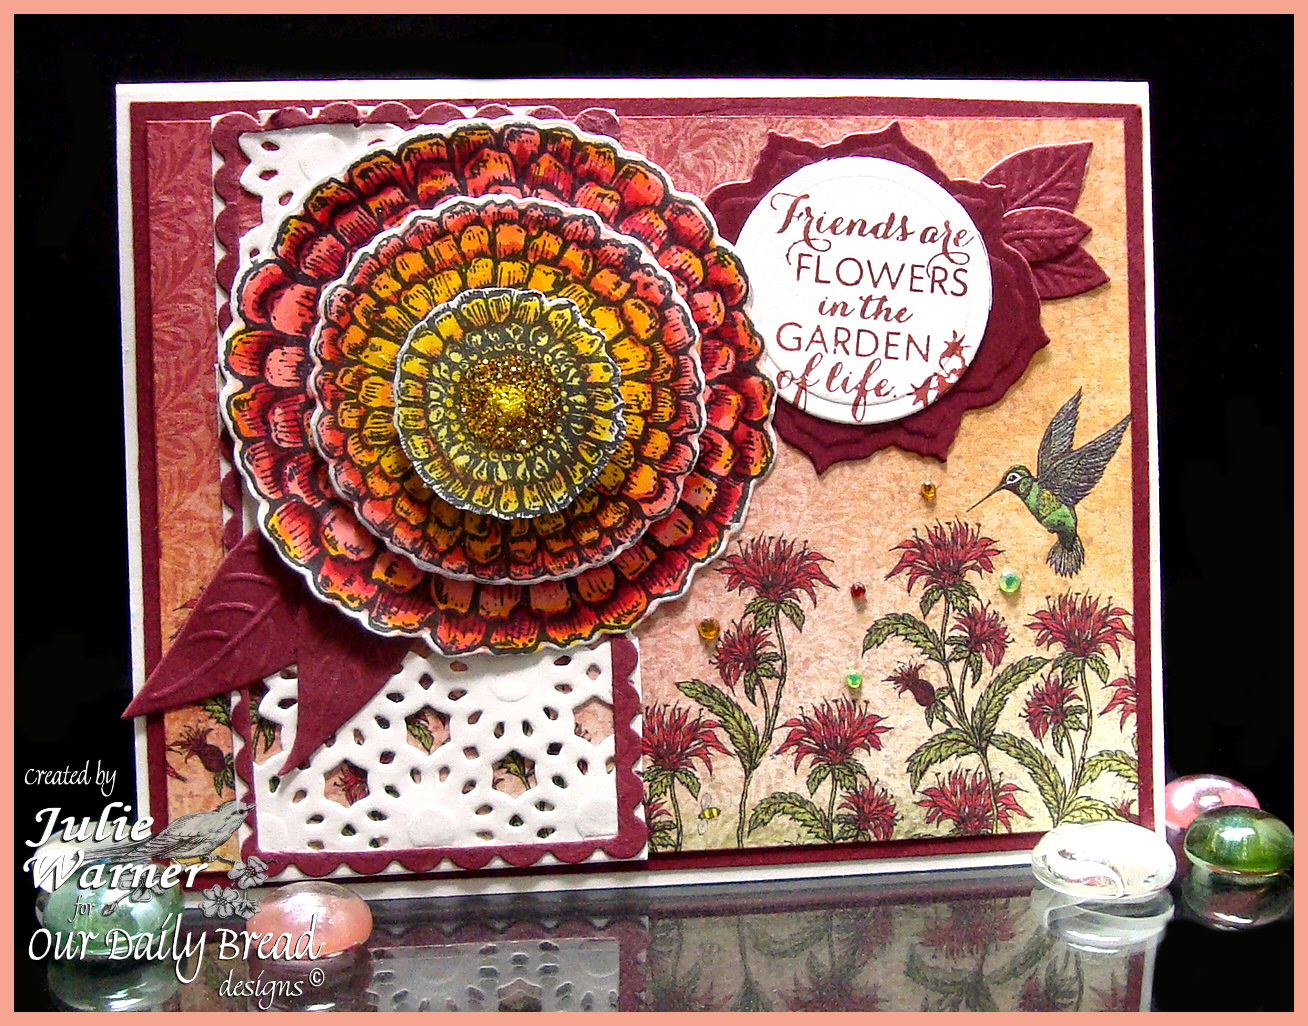 Stamps - Zinnia, ODBD Blooming Garden Paper Collection, ODBD Custom Zinnia and Leaves Die,ODBD Custom Daisy Chain Die,ODBD Custom Fancy Foliage Die